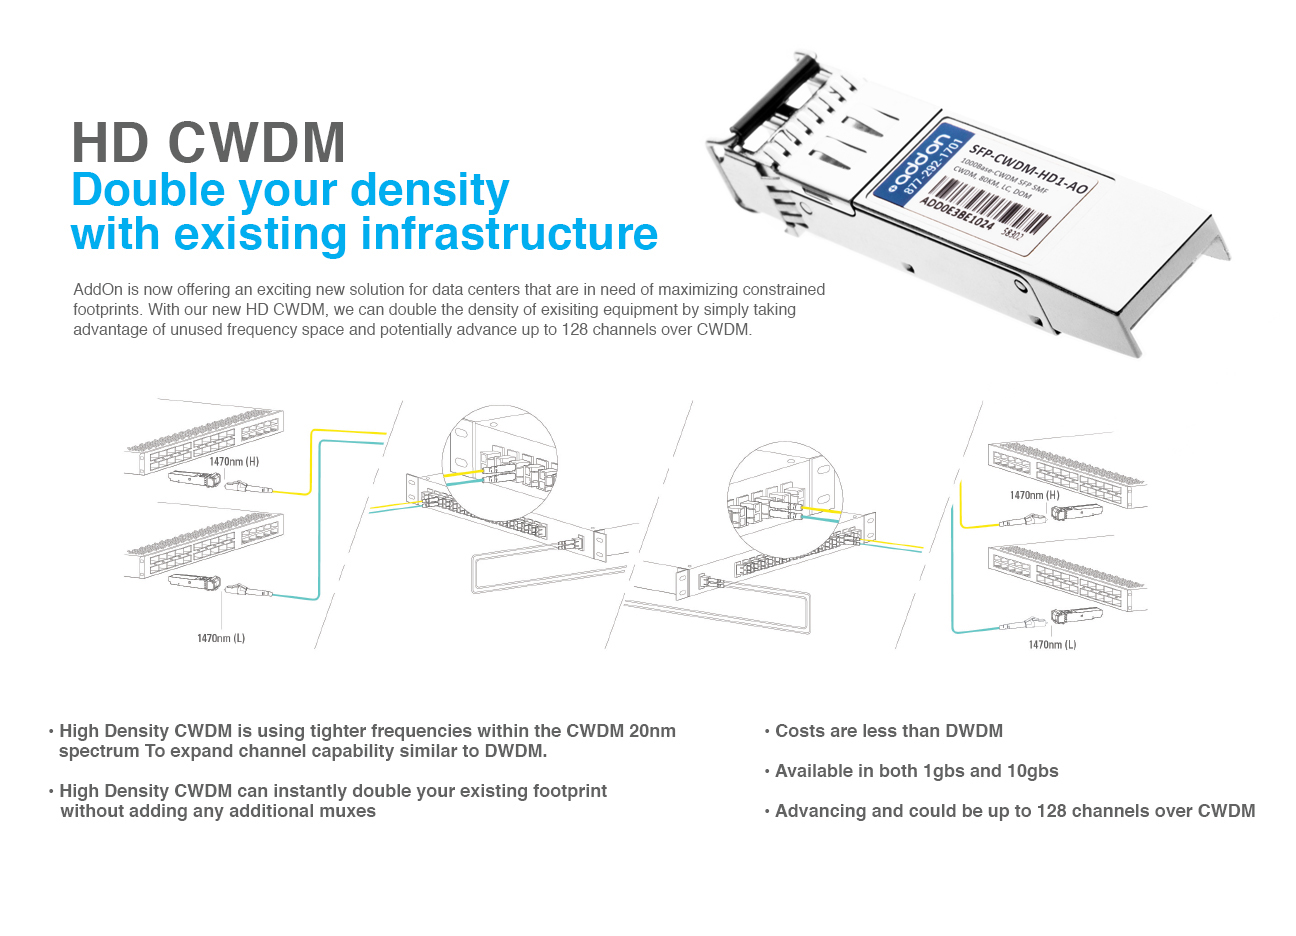 How to get the most out of your existing footprint without adding or expanding: HD CWDM